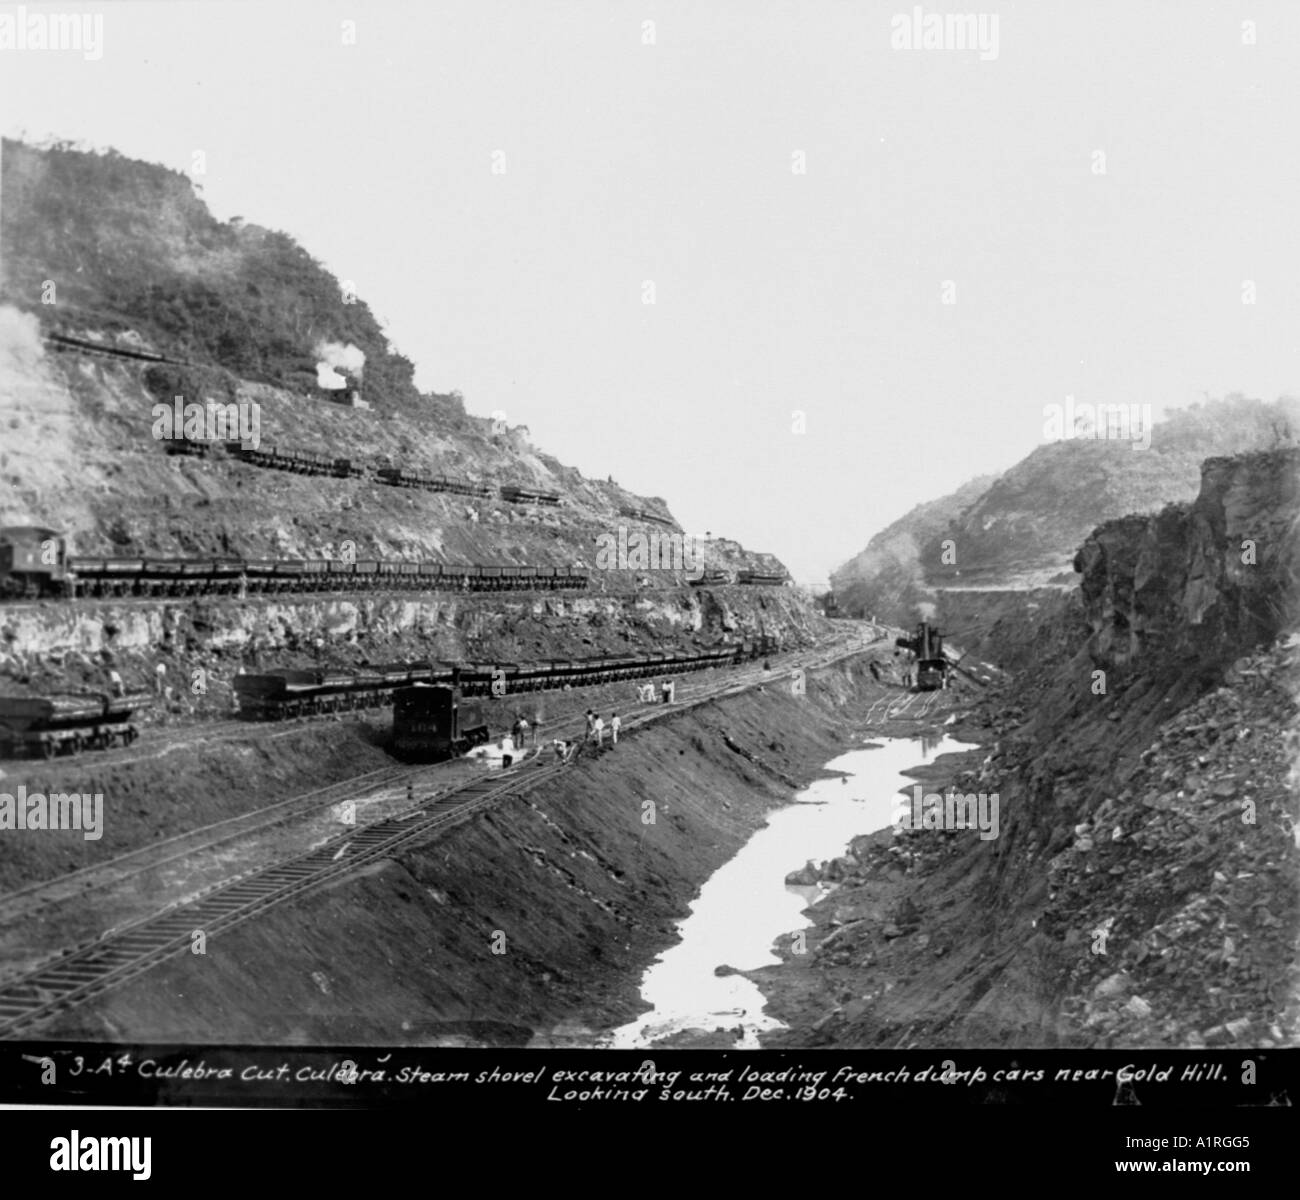 Culebra Cut Culebra Steam shovel excavating and loading French dump cars near Gold Hill looking South Dec 1904 - Stock Image